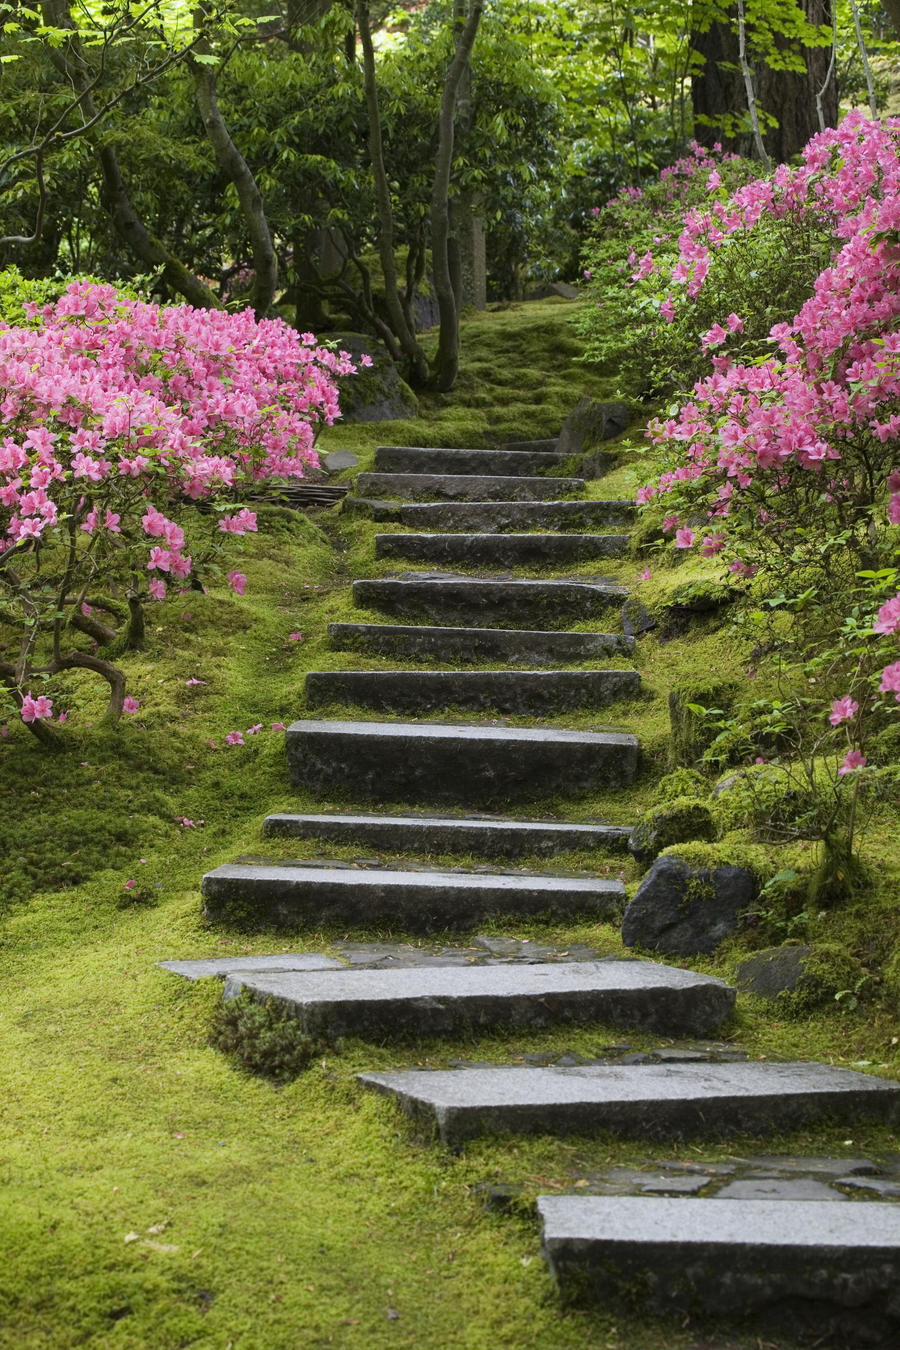 Rock Stairway Along A Moss Covered Hill With Flowering Bushes